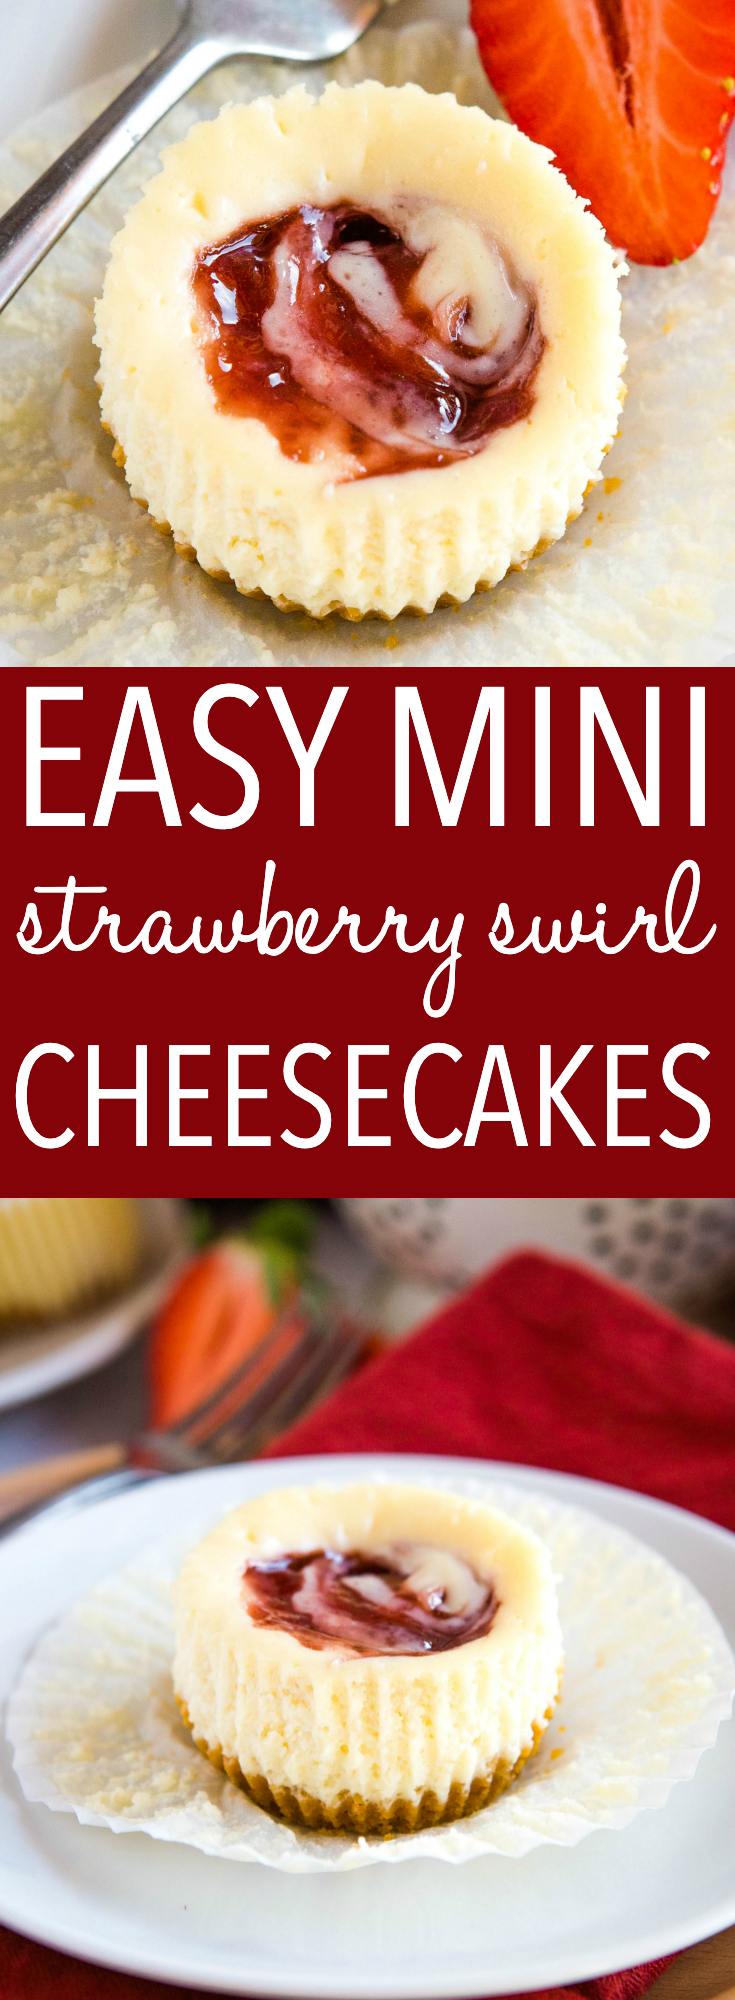 These Easy Mini Strawberry Swirl Cheesecakes are the perfect easy dessert for spring and summer! Just a few simple ingredients, an easy cookie crust and a fluffy cheesecake filling with a swirl of sweet strawberry jam! Recipe from thebusybaker.ca! #strawberry #cheesecake #minicheesecakes #minidessert #summer #spring #baking via @busybakerblog